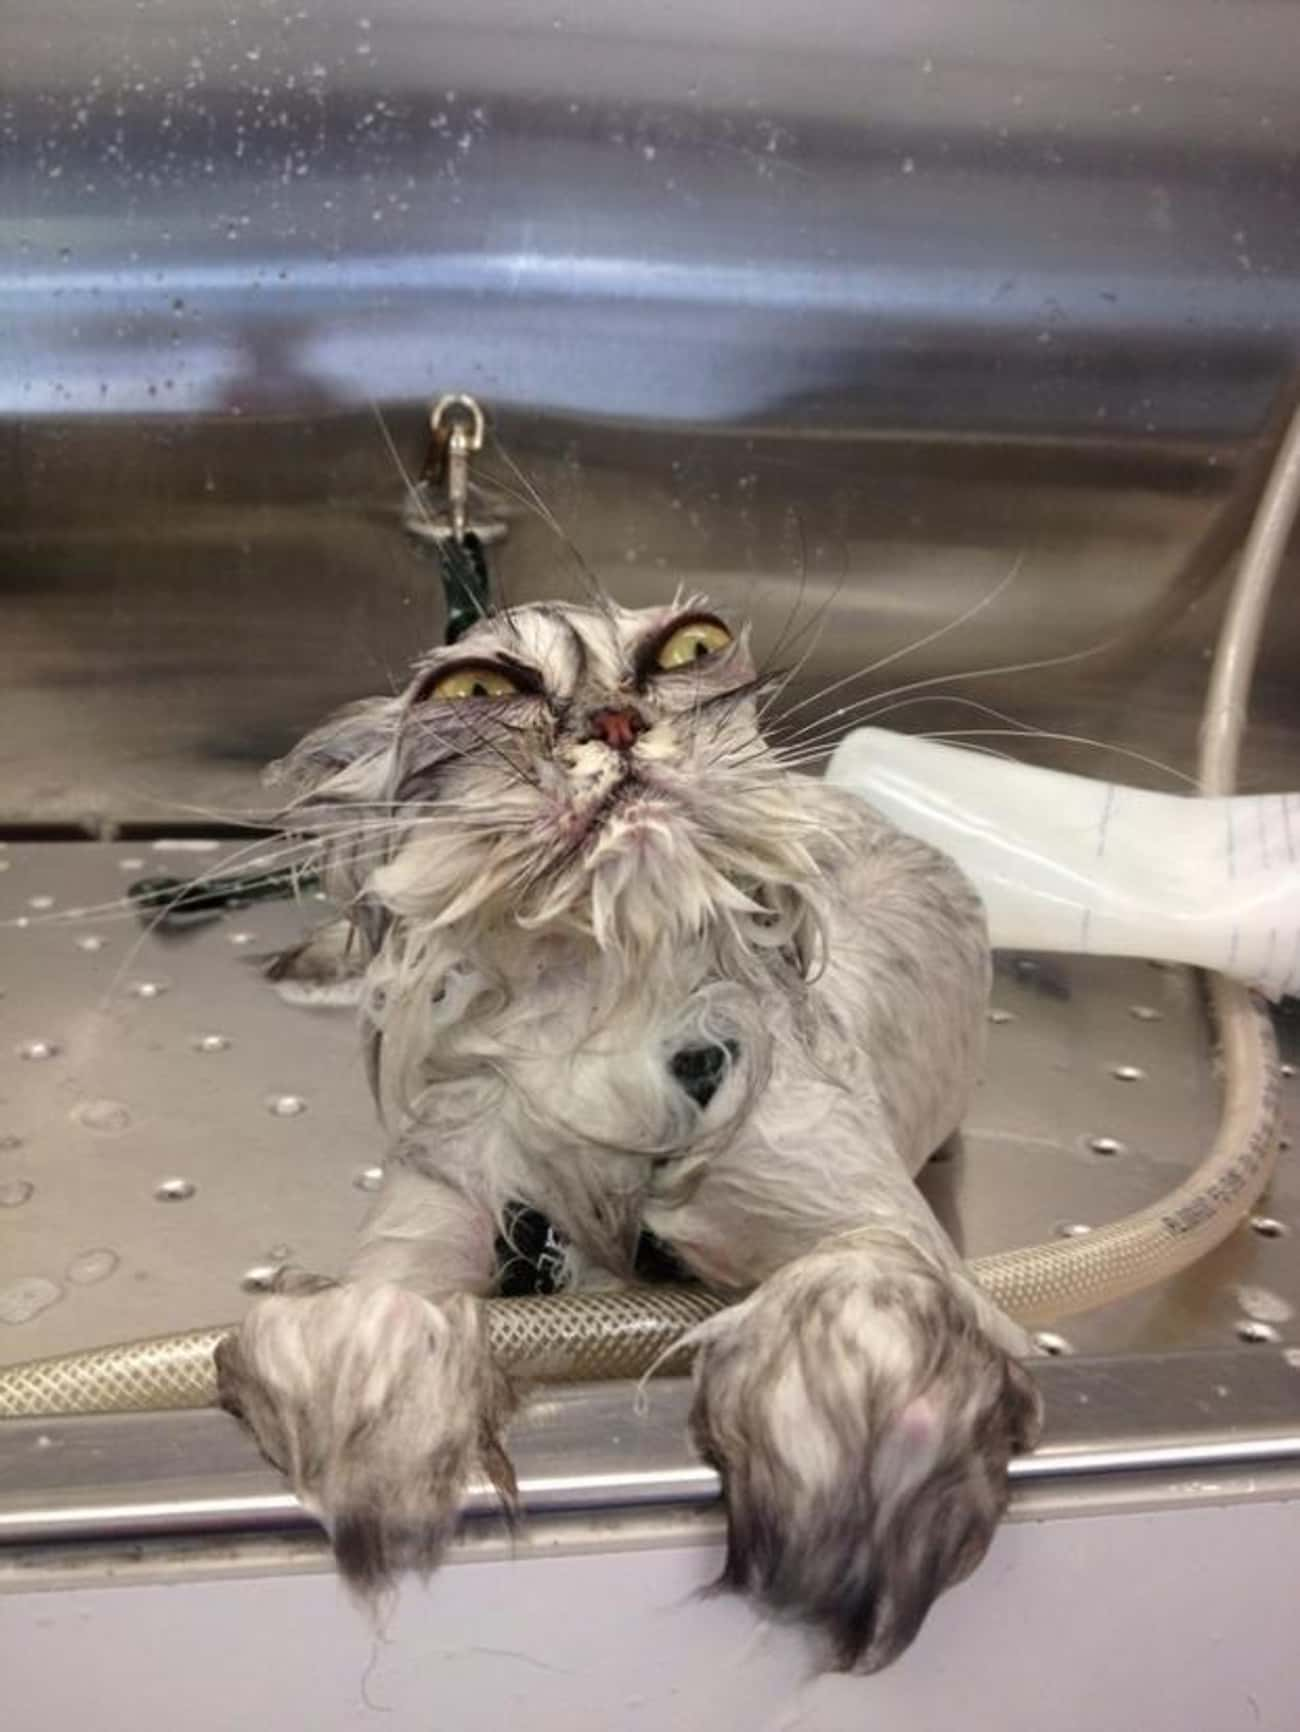 Bath Kitty Shall Exact Vengean is listed (or ranked) 4 on the list 19 Cute Animals That Look Scary When They're Soaking Wet